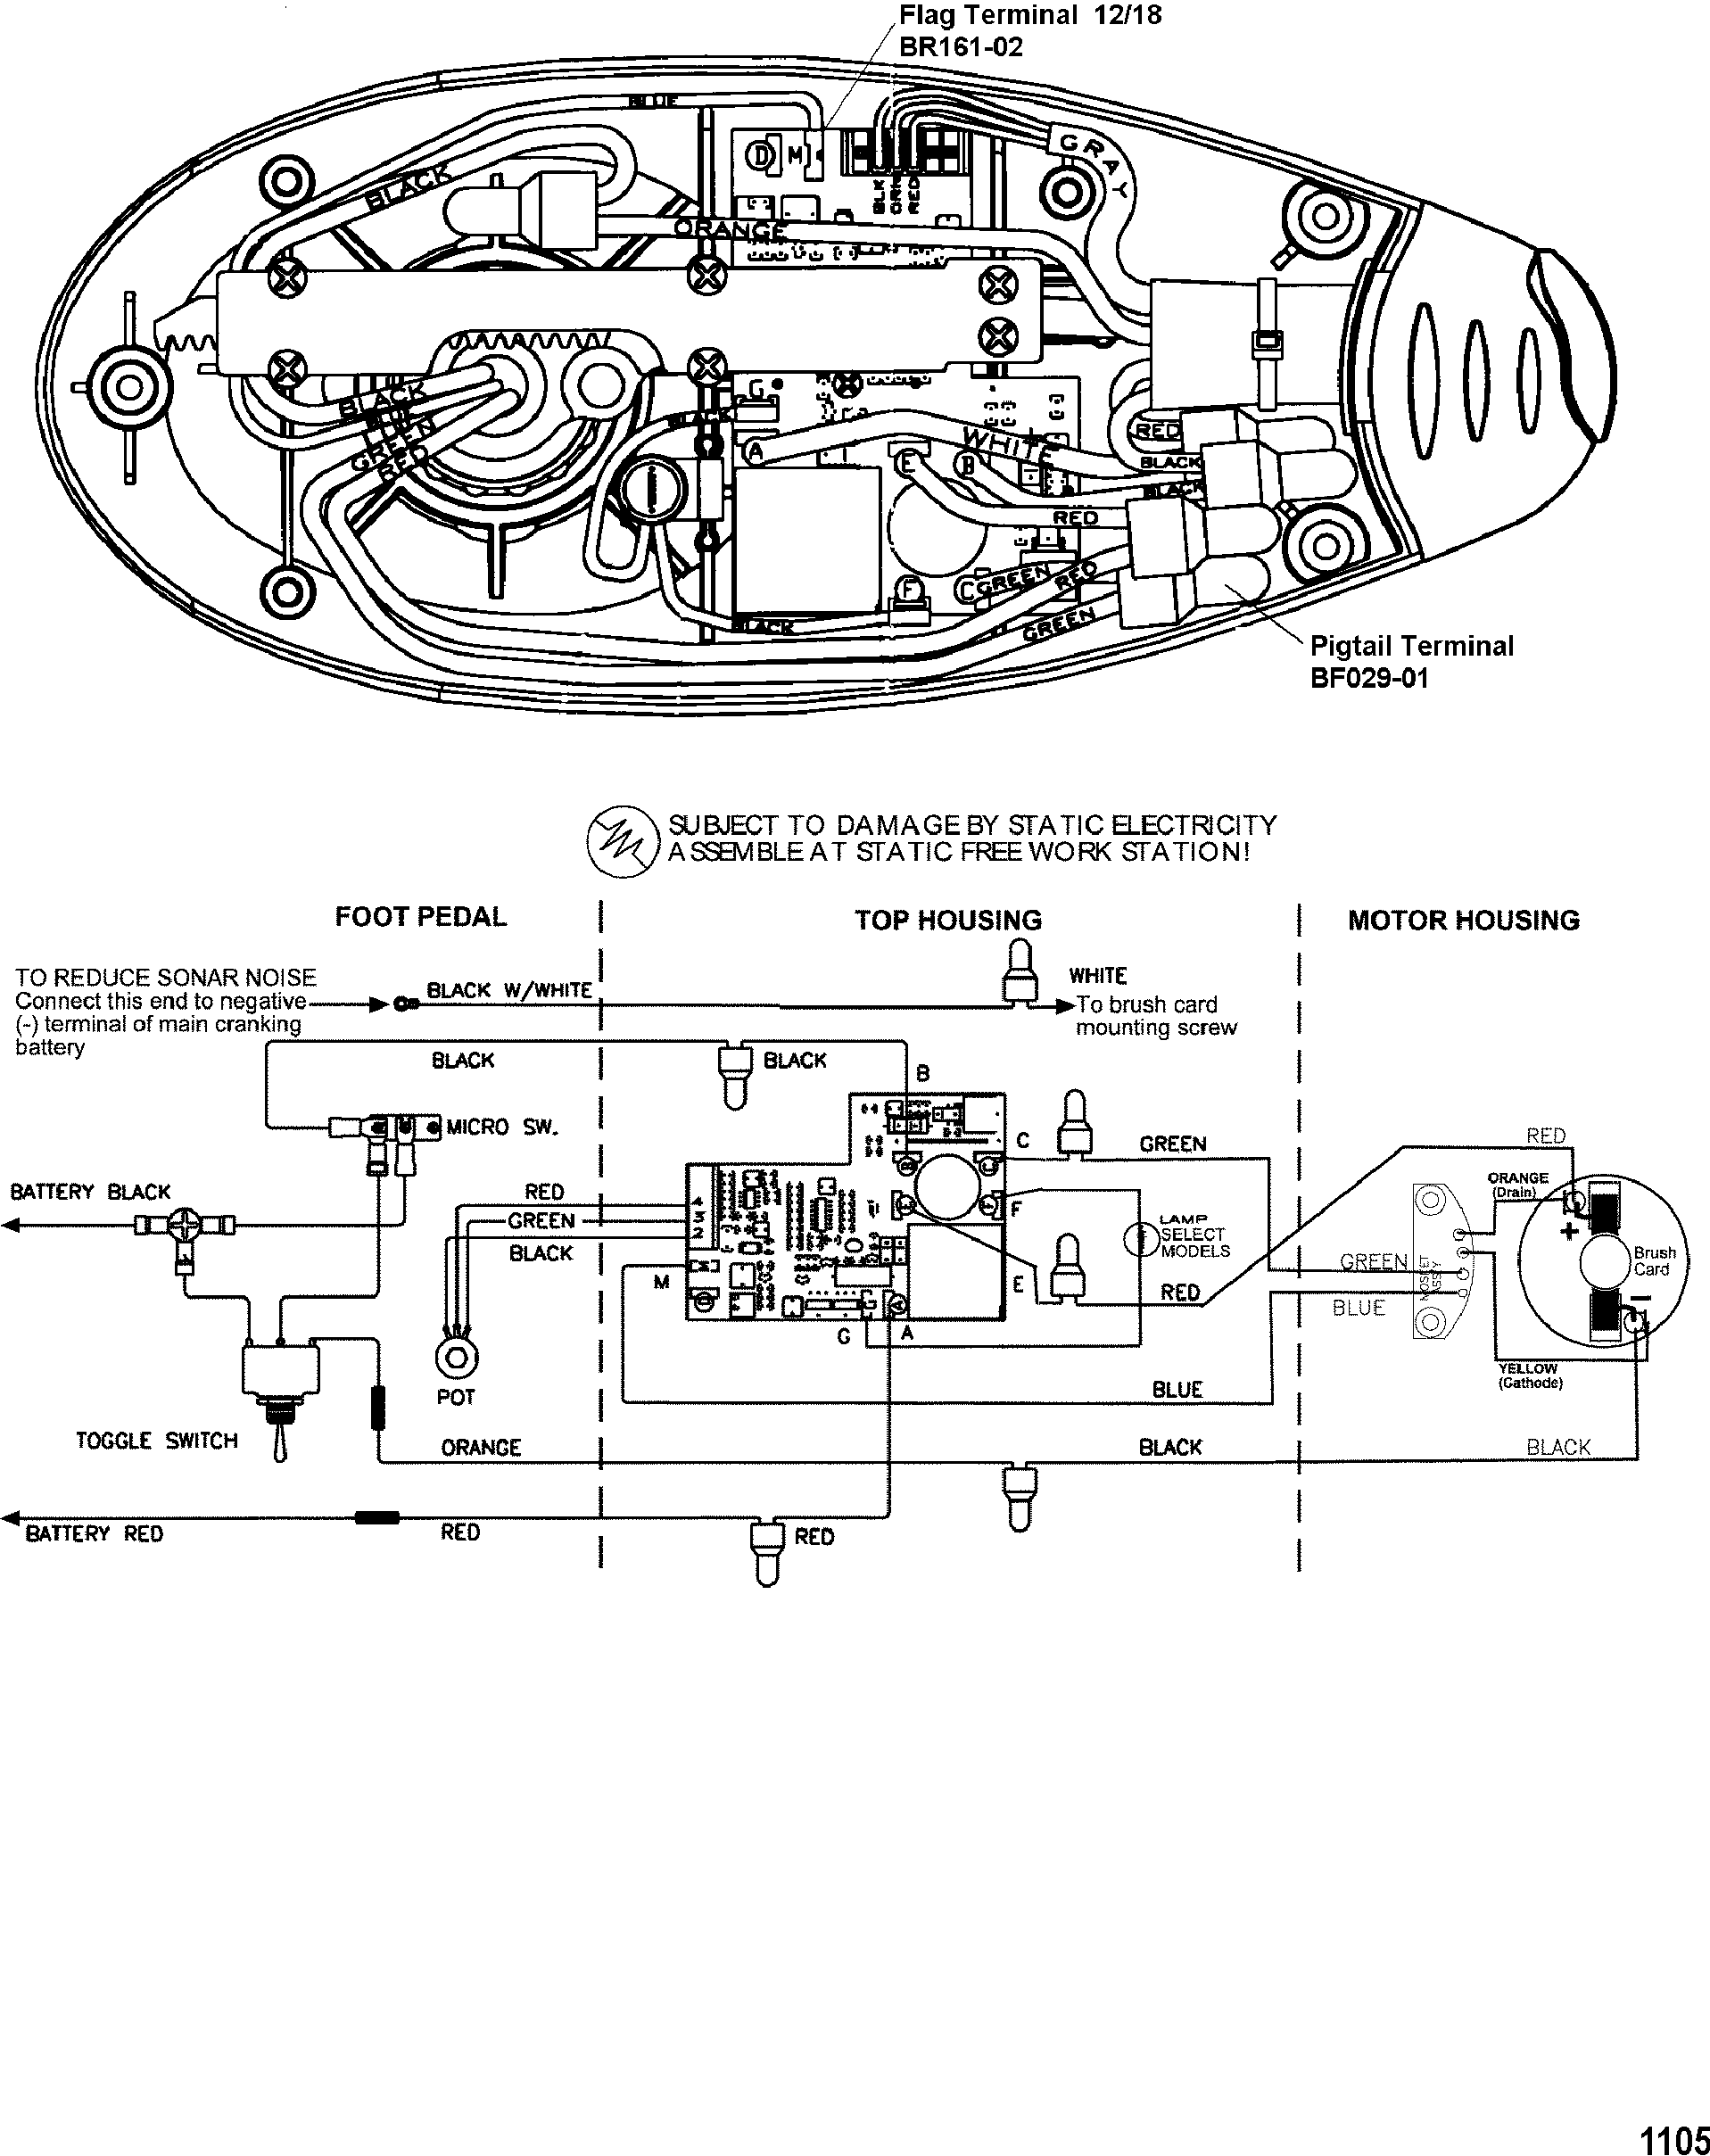 Wire Diagram(Model EF60V) (24 Volt) — Компания «Лакор»